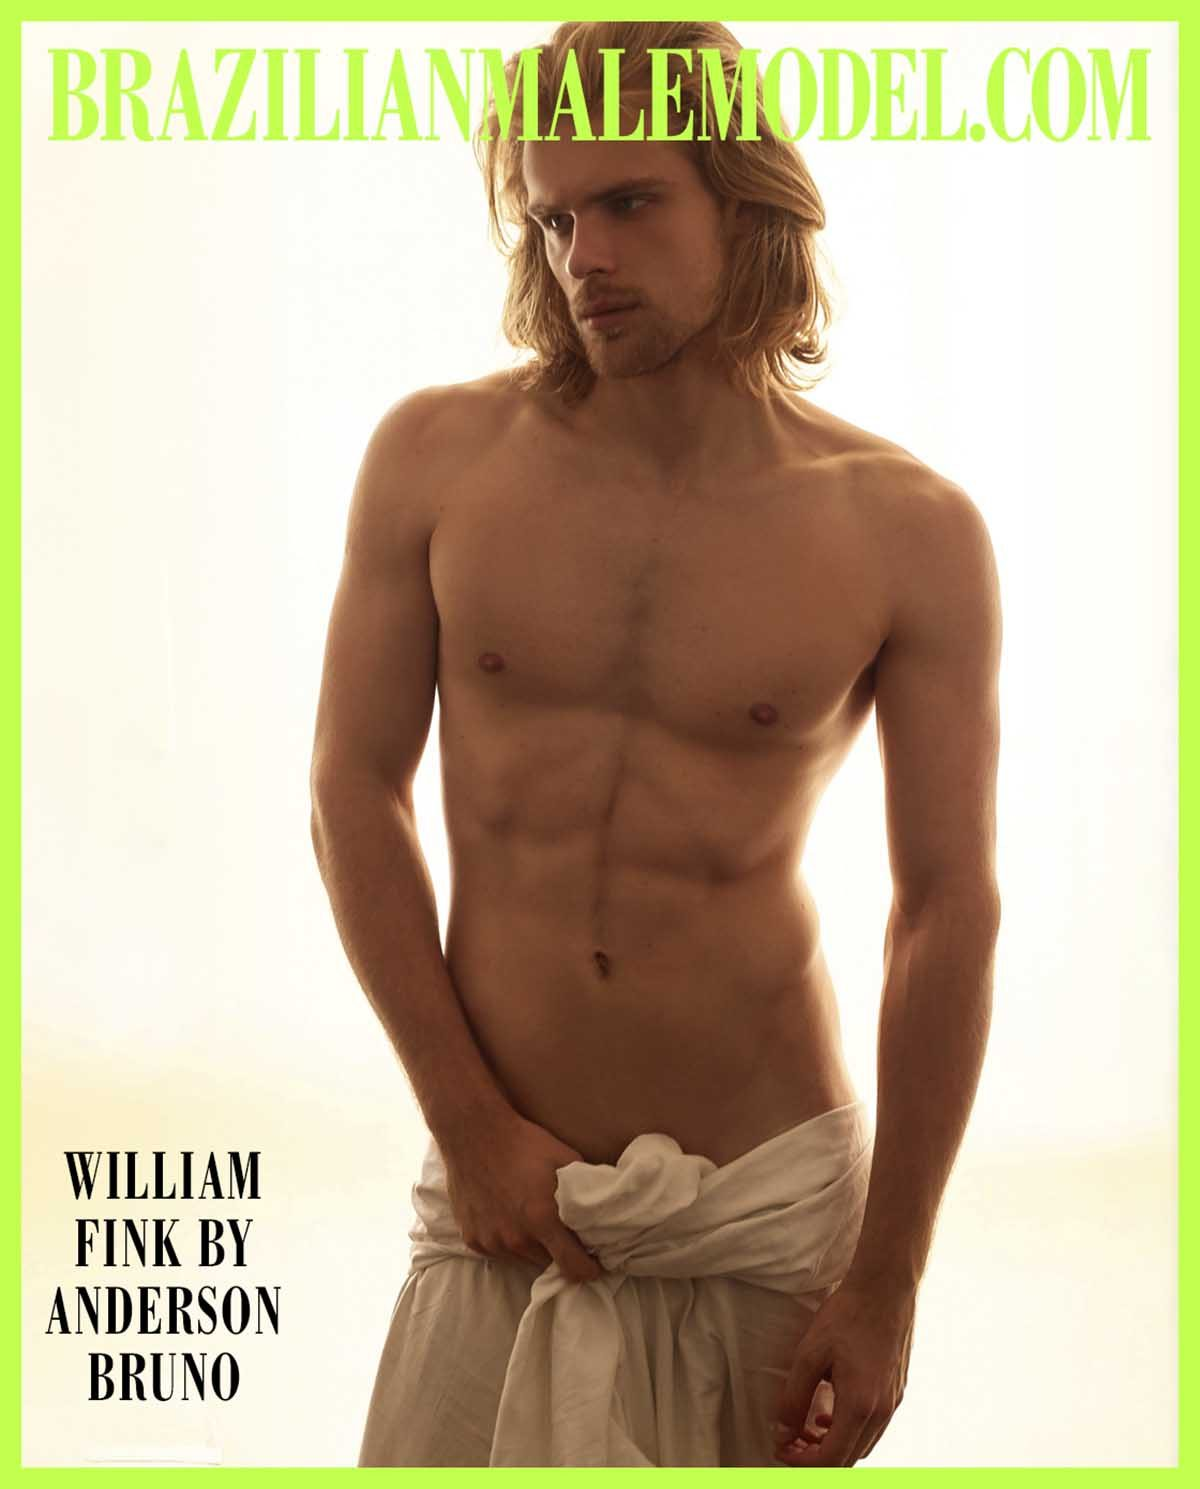 William Fink by Anderson Bruno